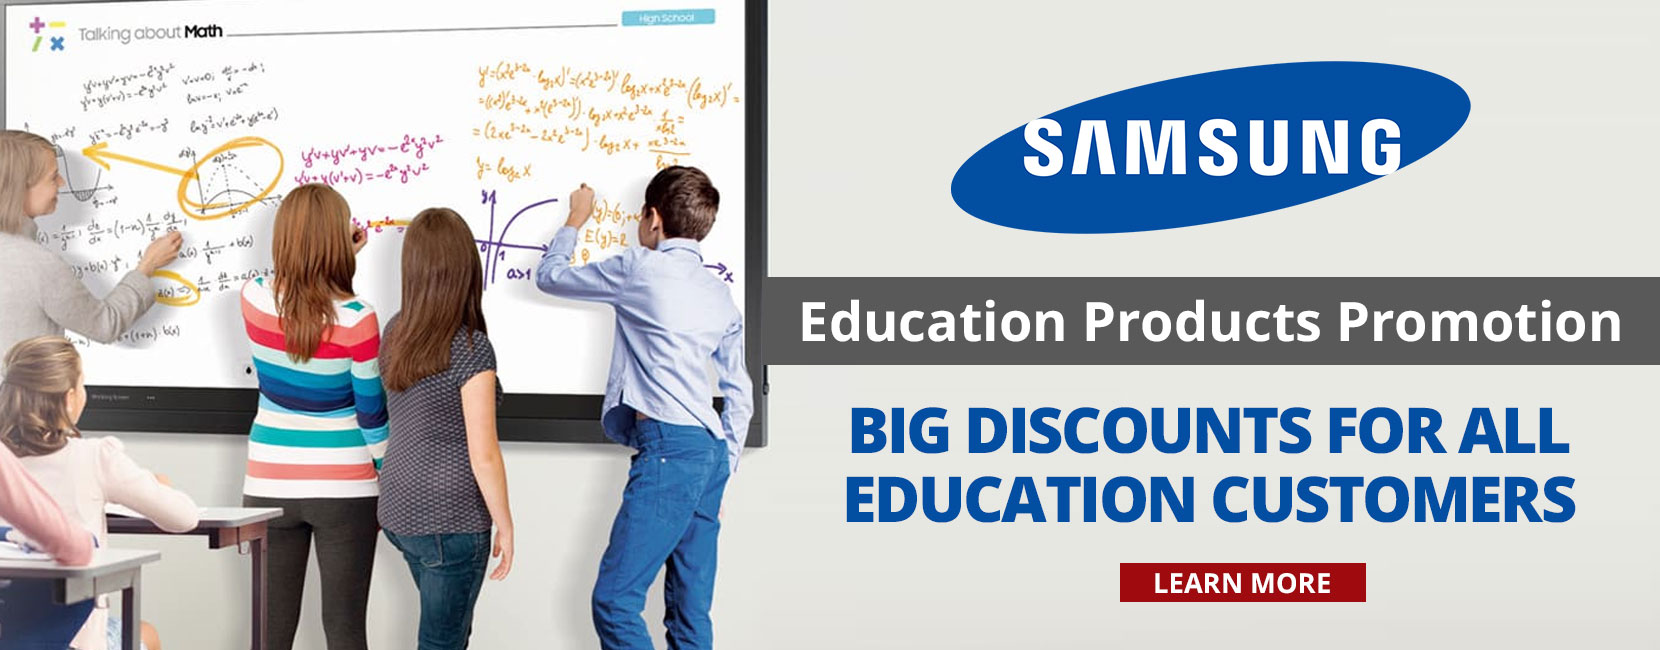 Samsung Education Promotion